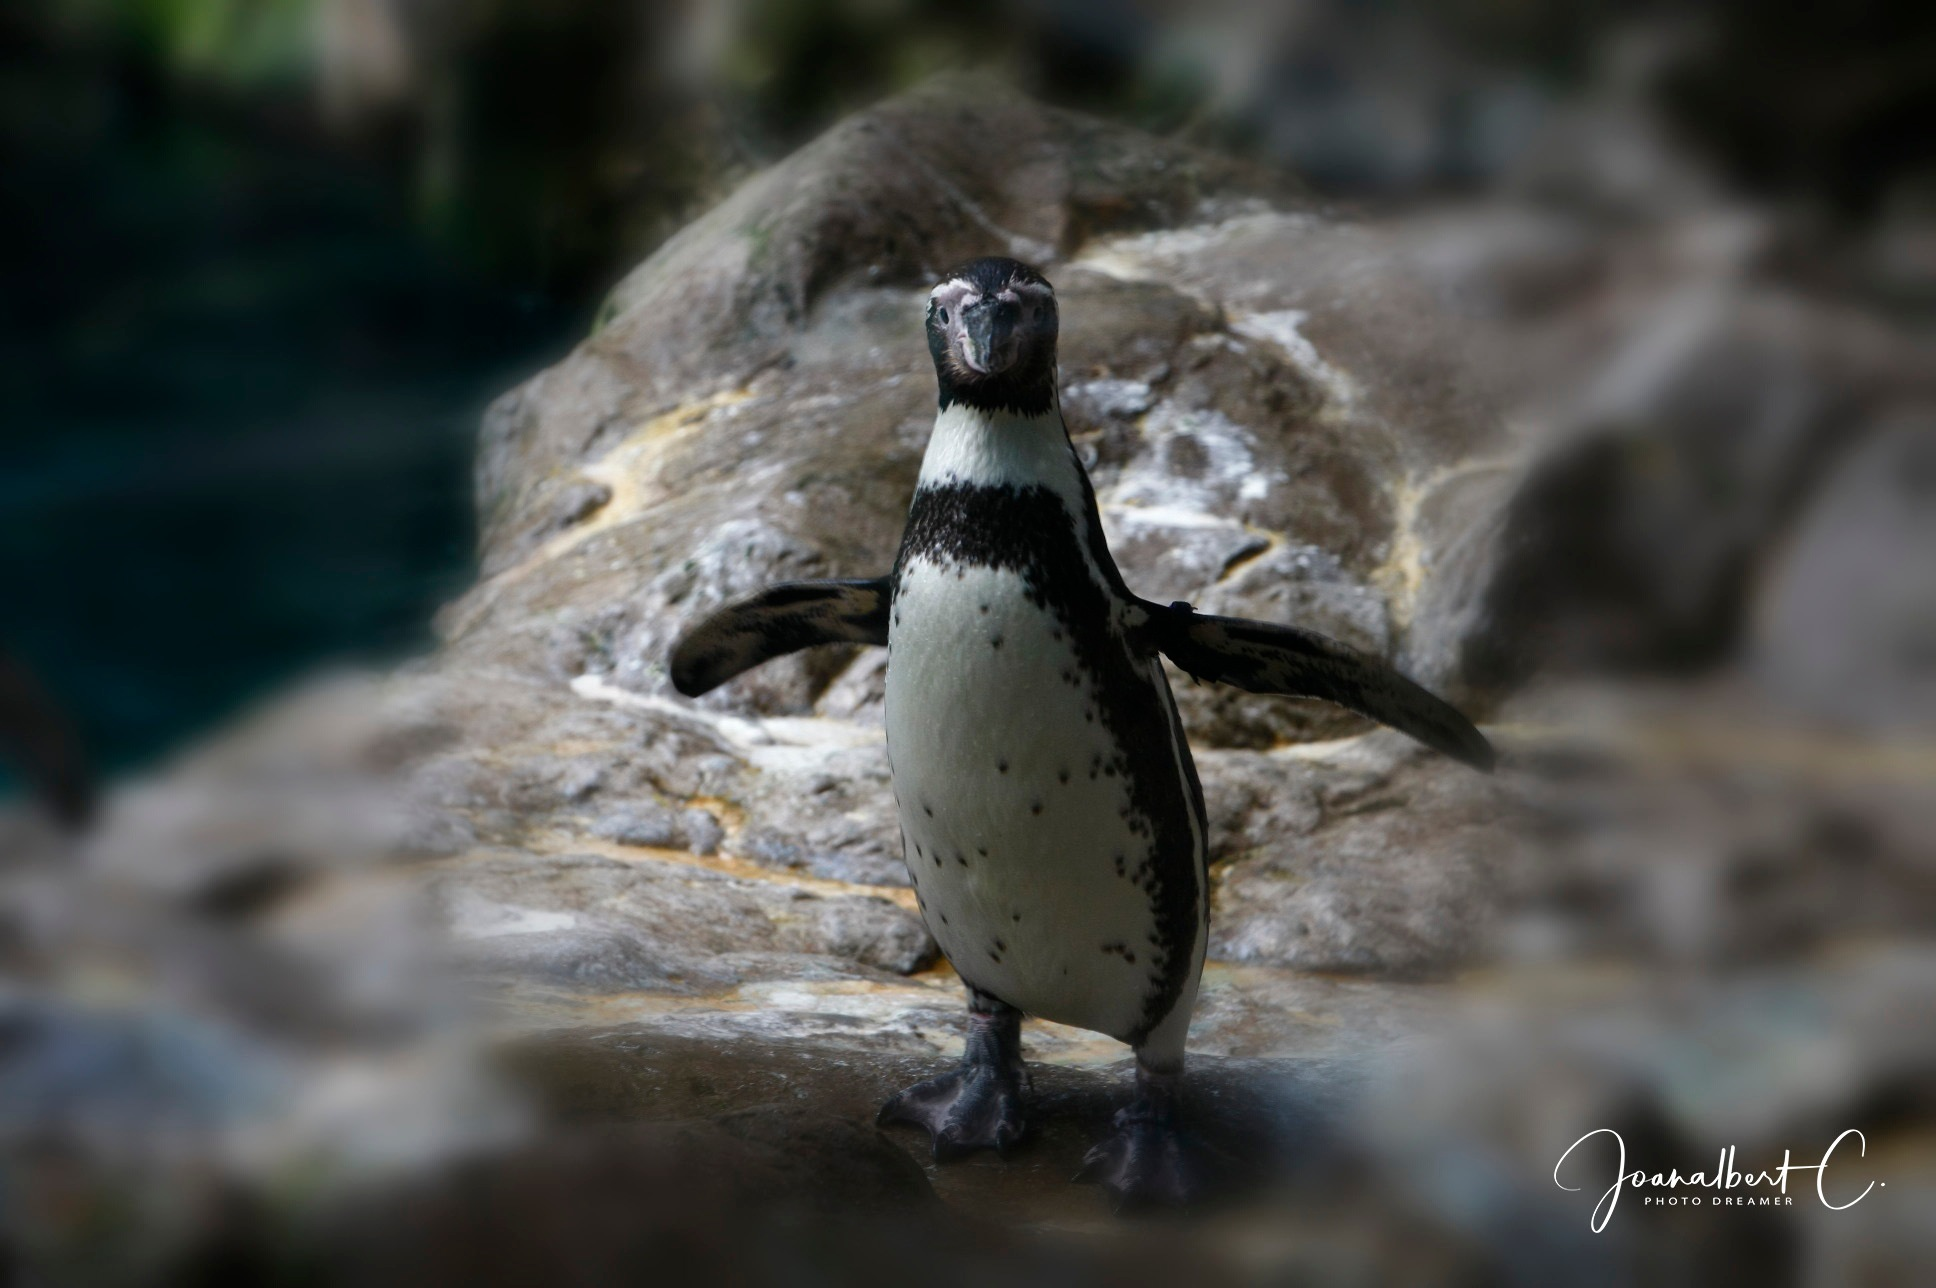 Happy feet by Joanalbert Castillo Solé